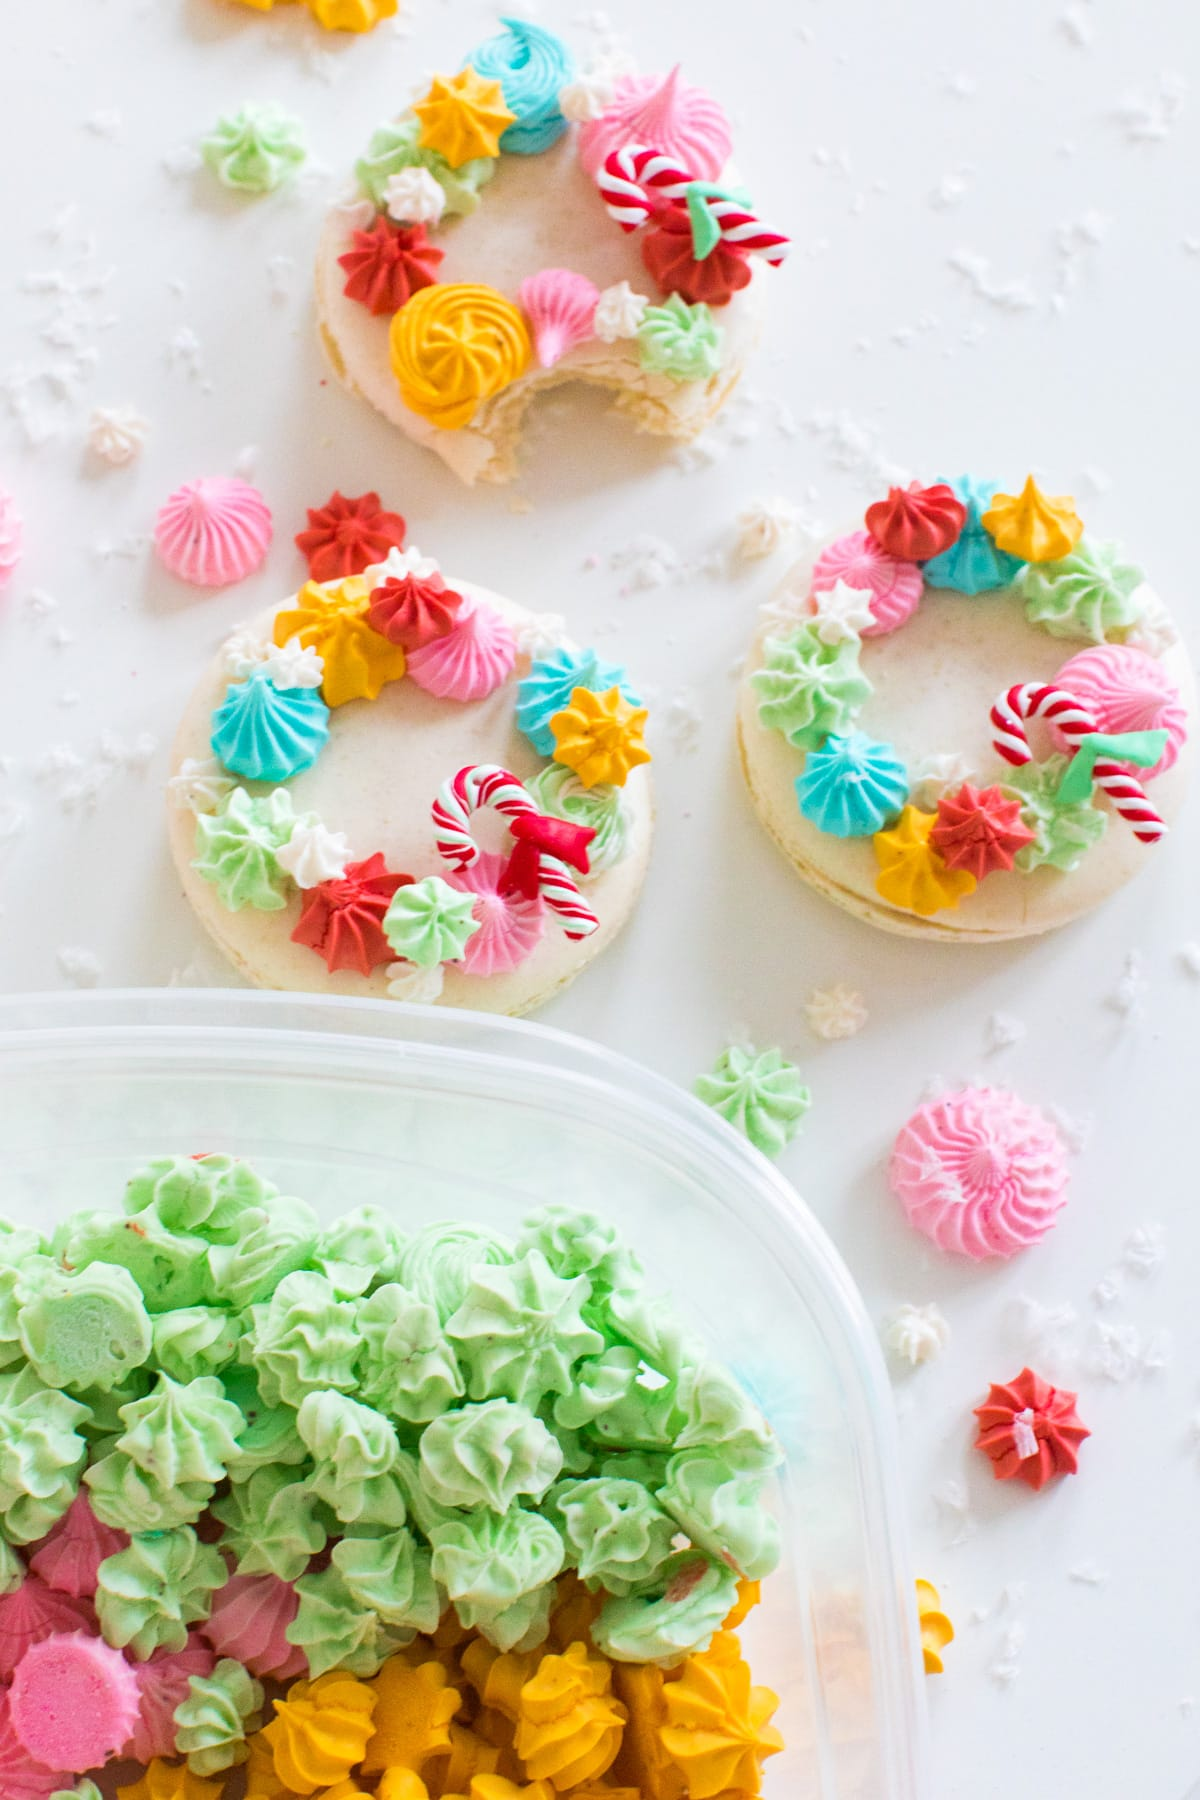 topping macarons with meringues - How to Make Holiday Wreath Meringue Macarons by top Houston lifestyle blogger Ashley Rose of Sugar & Cloth #holiday #cookies #meringues #wreath #christmas #ideas